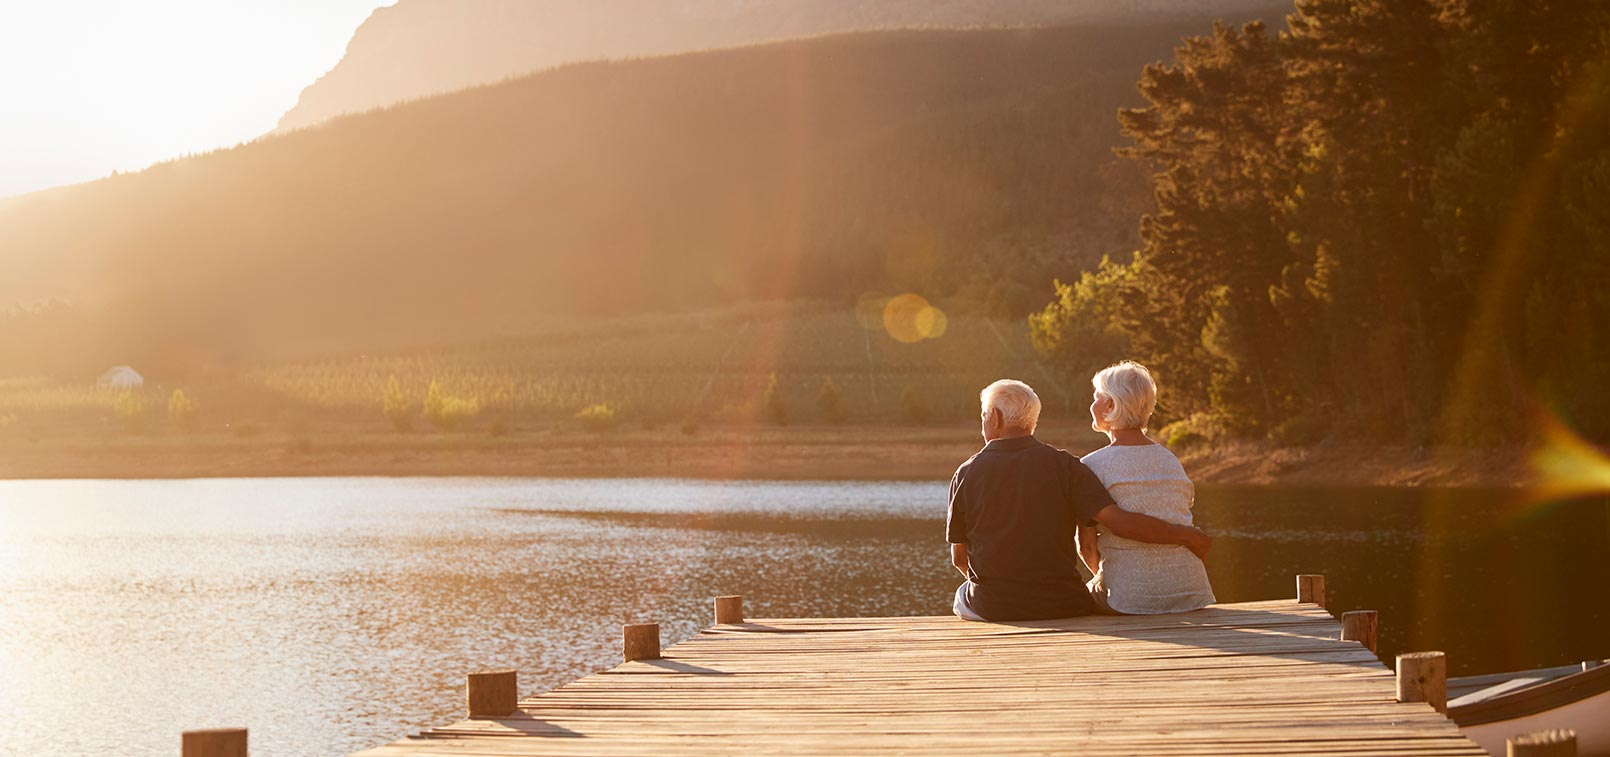 Retire couple sitting on a dock watching the sun set, Weller Capital